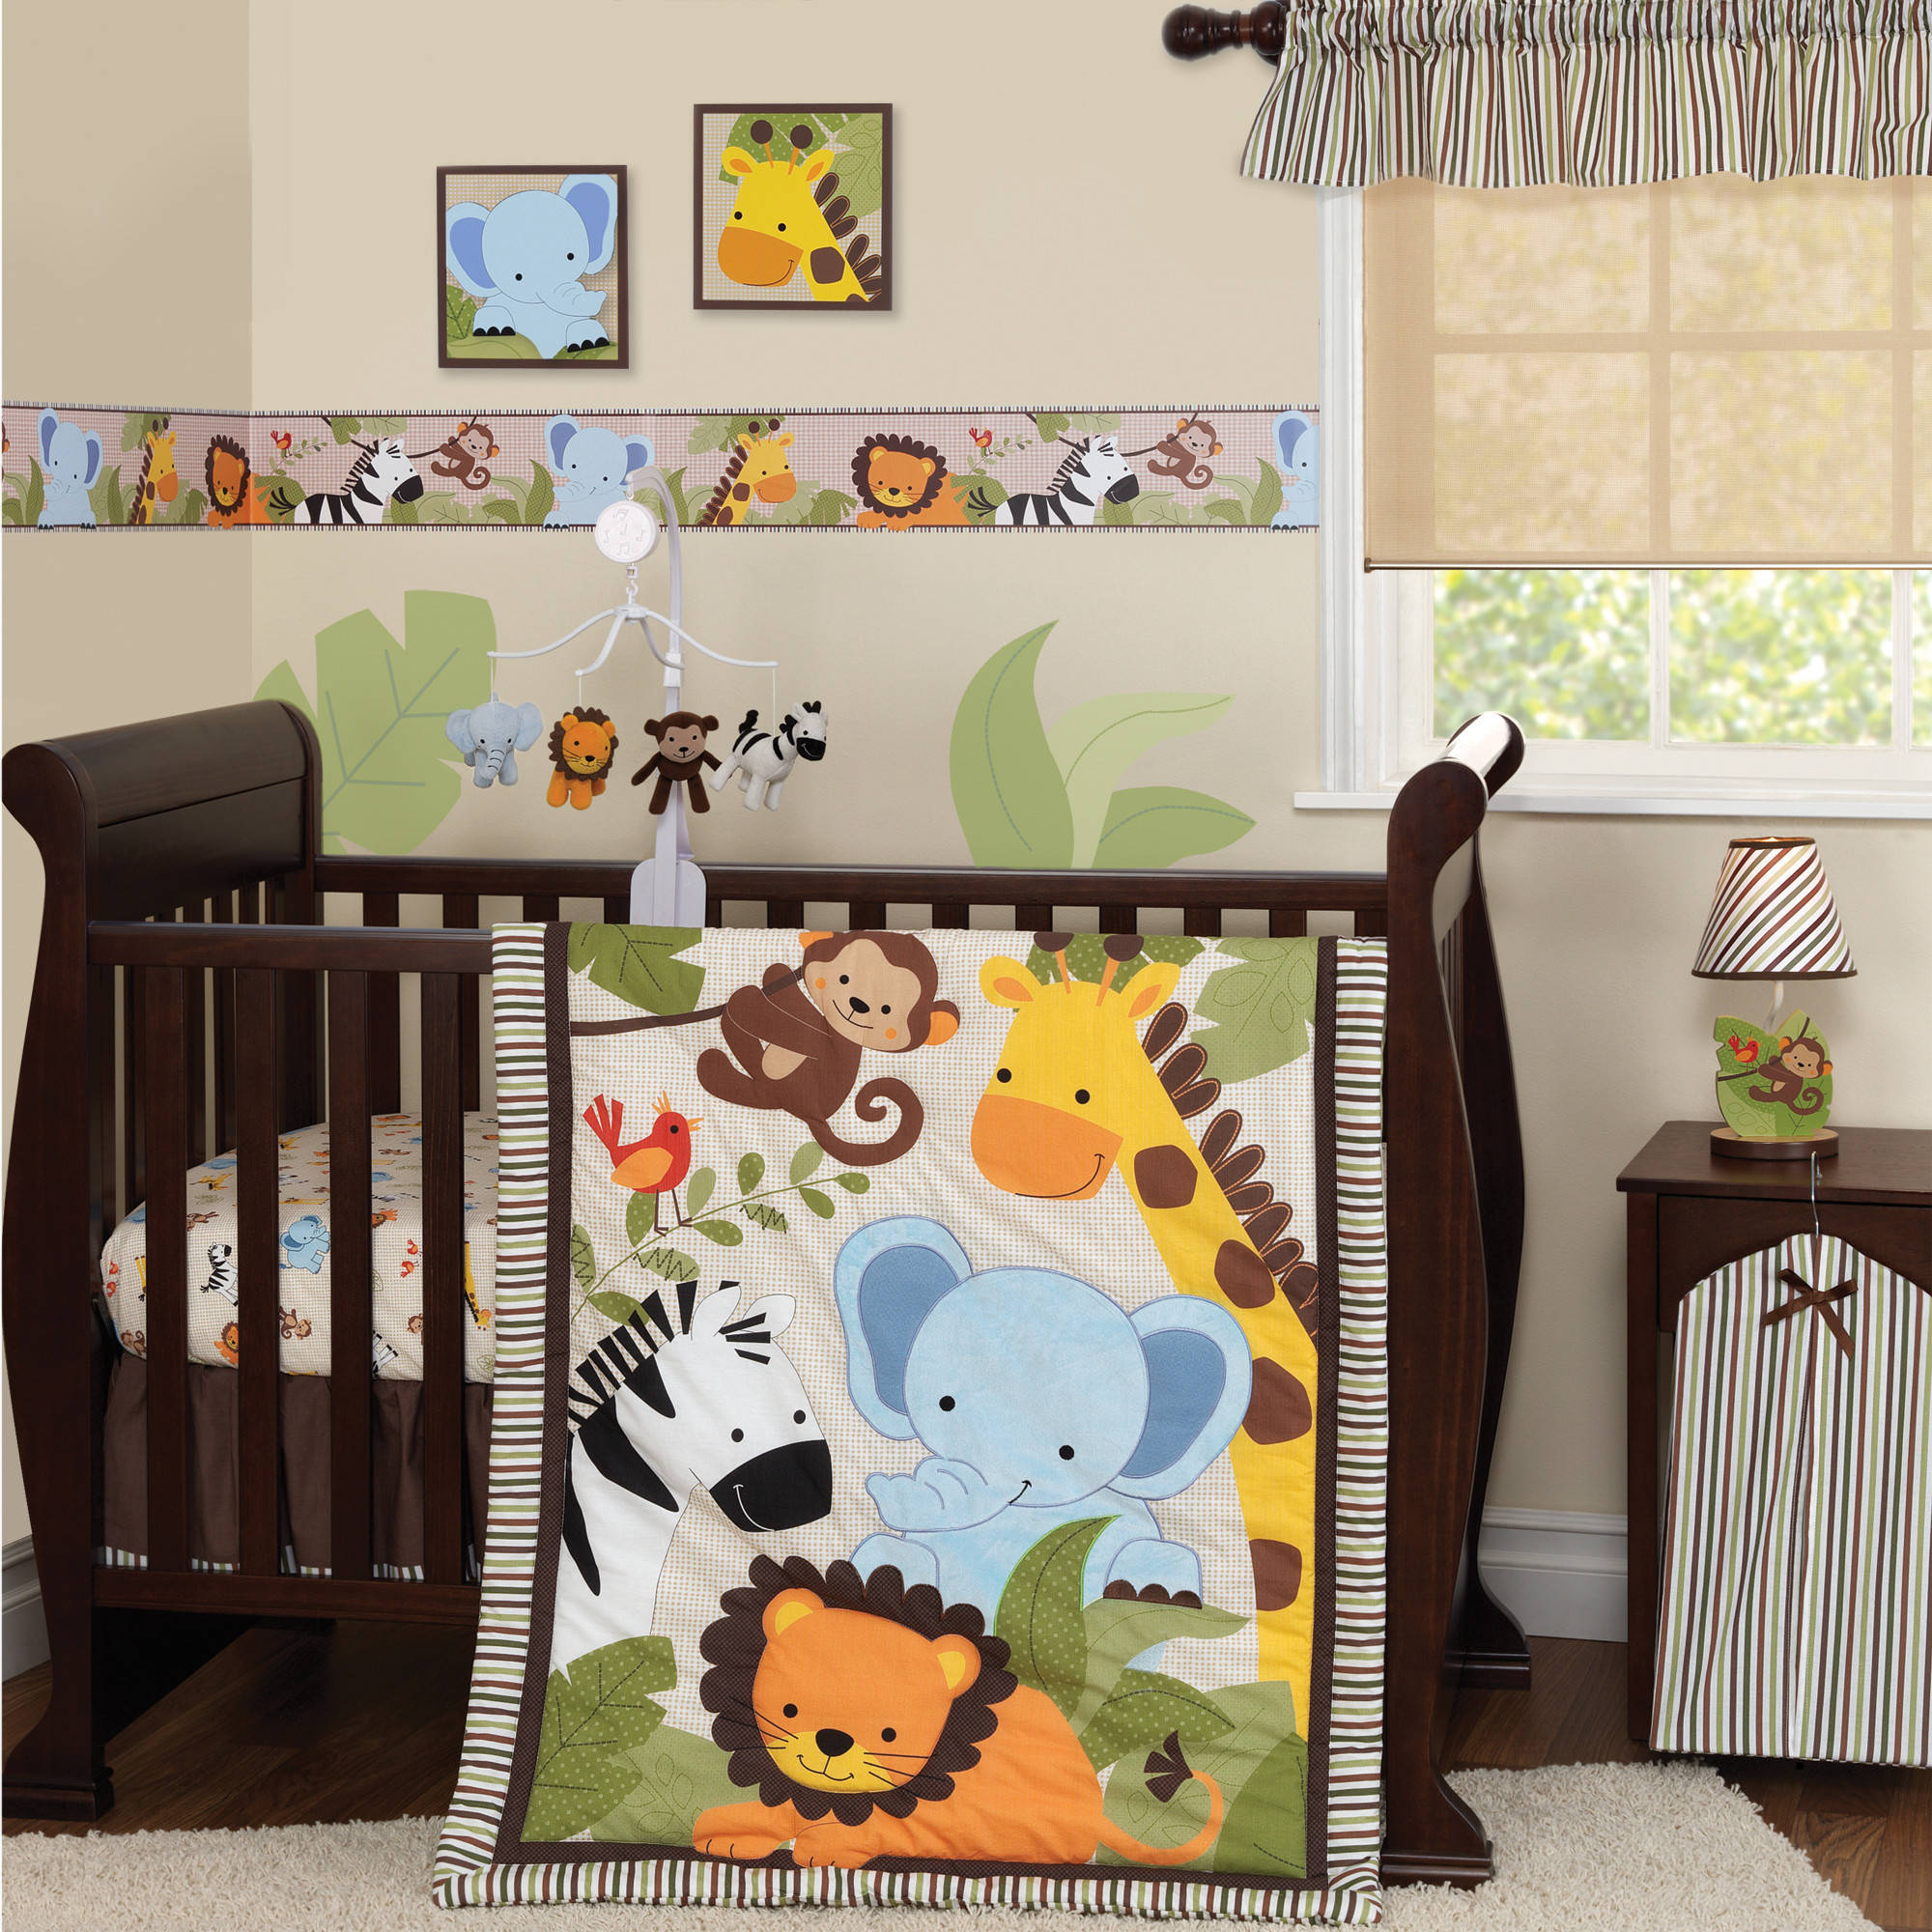 Bedtime Originals by Lambs & Ivy - Jungle Buddies 3-Piece Crib Bedding Set, Brown